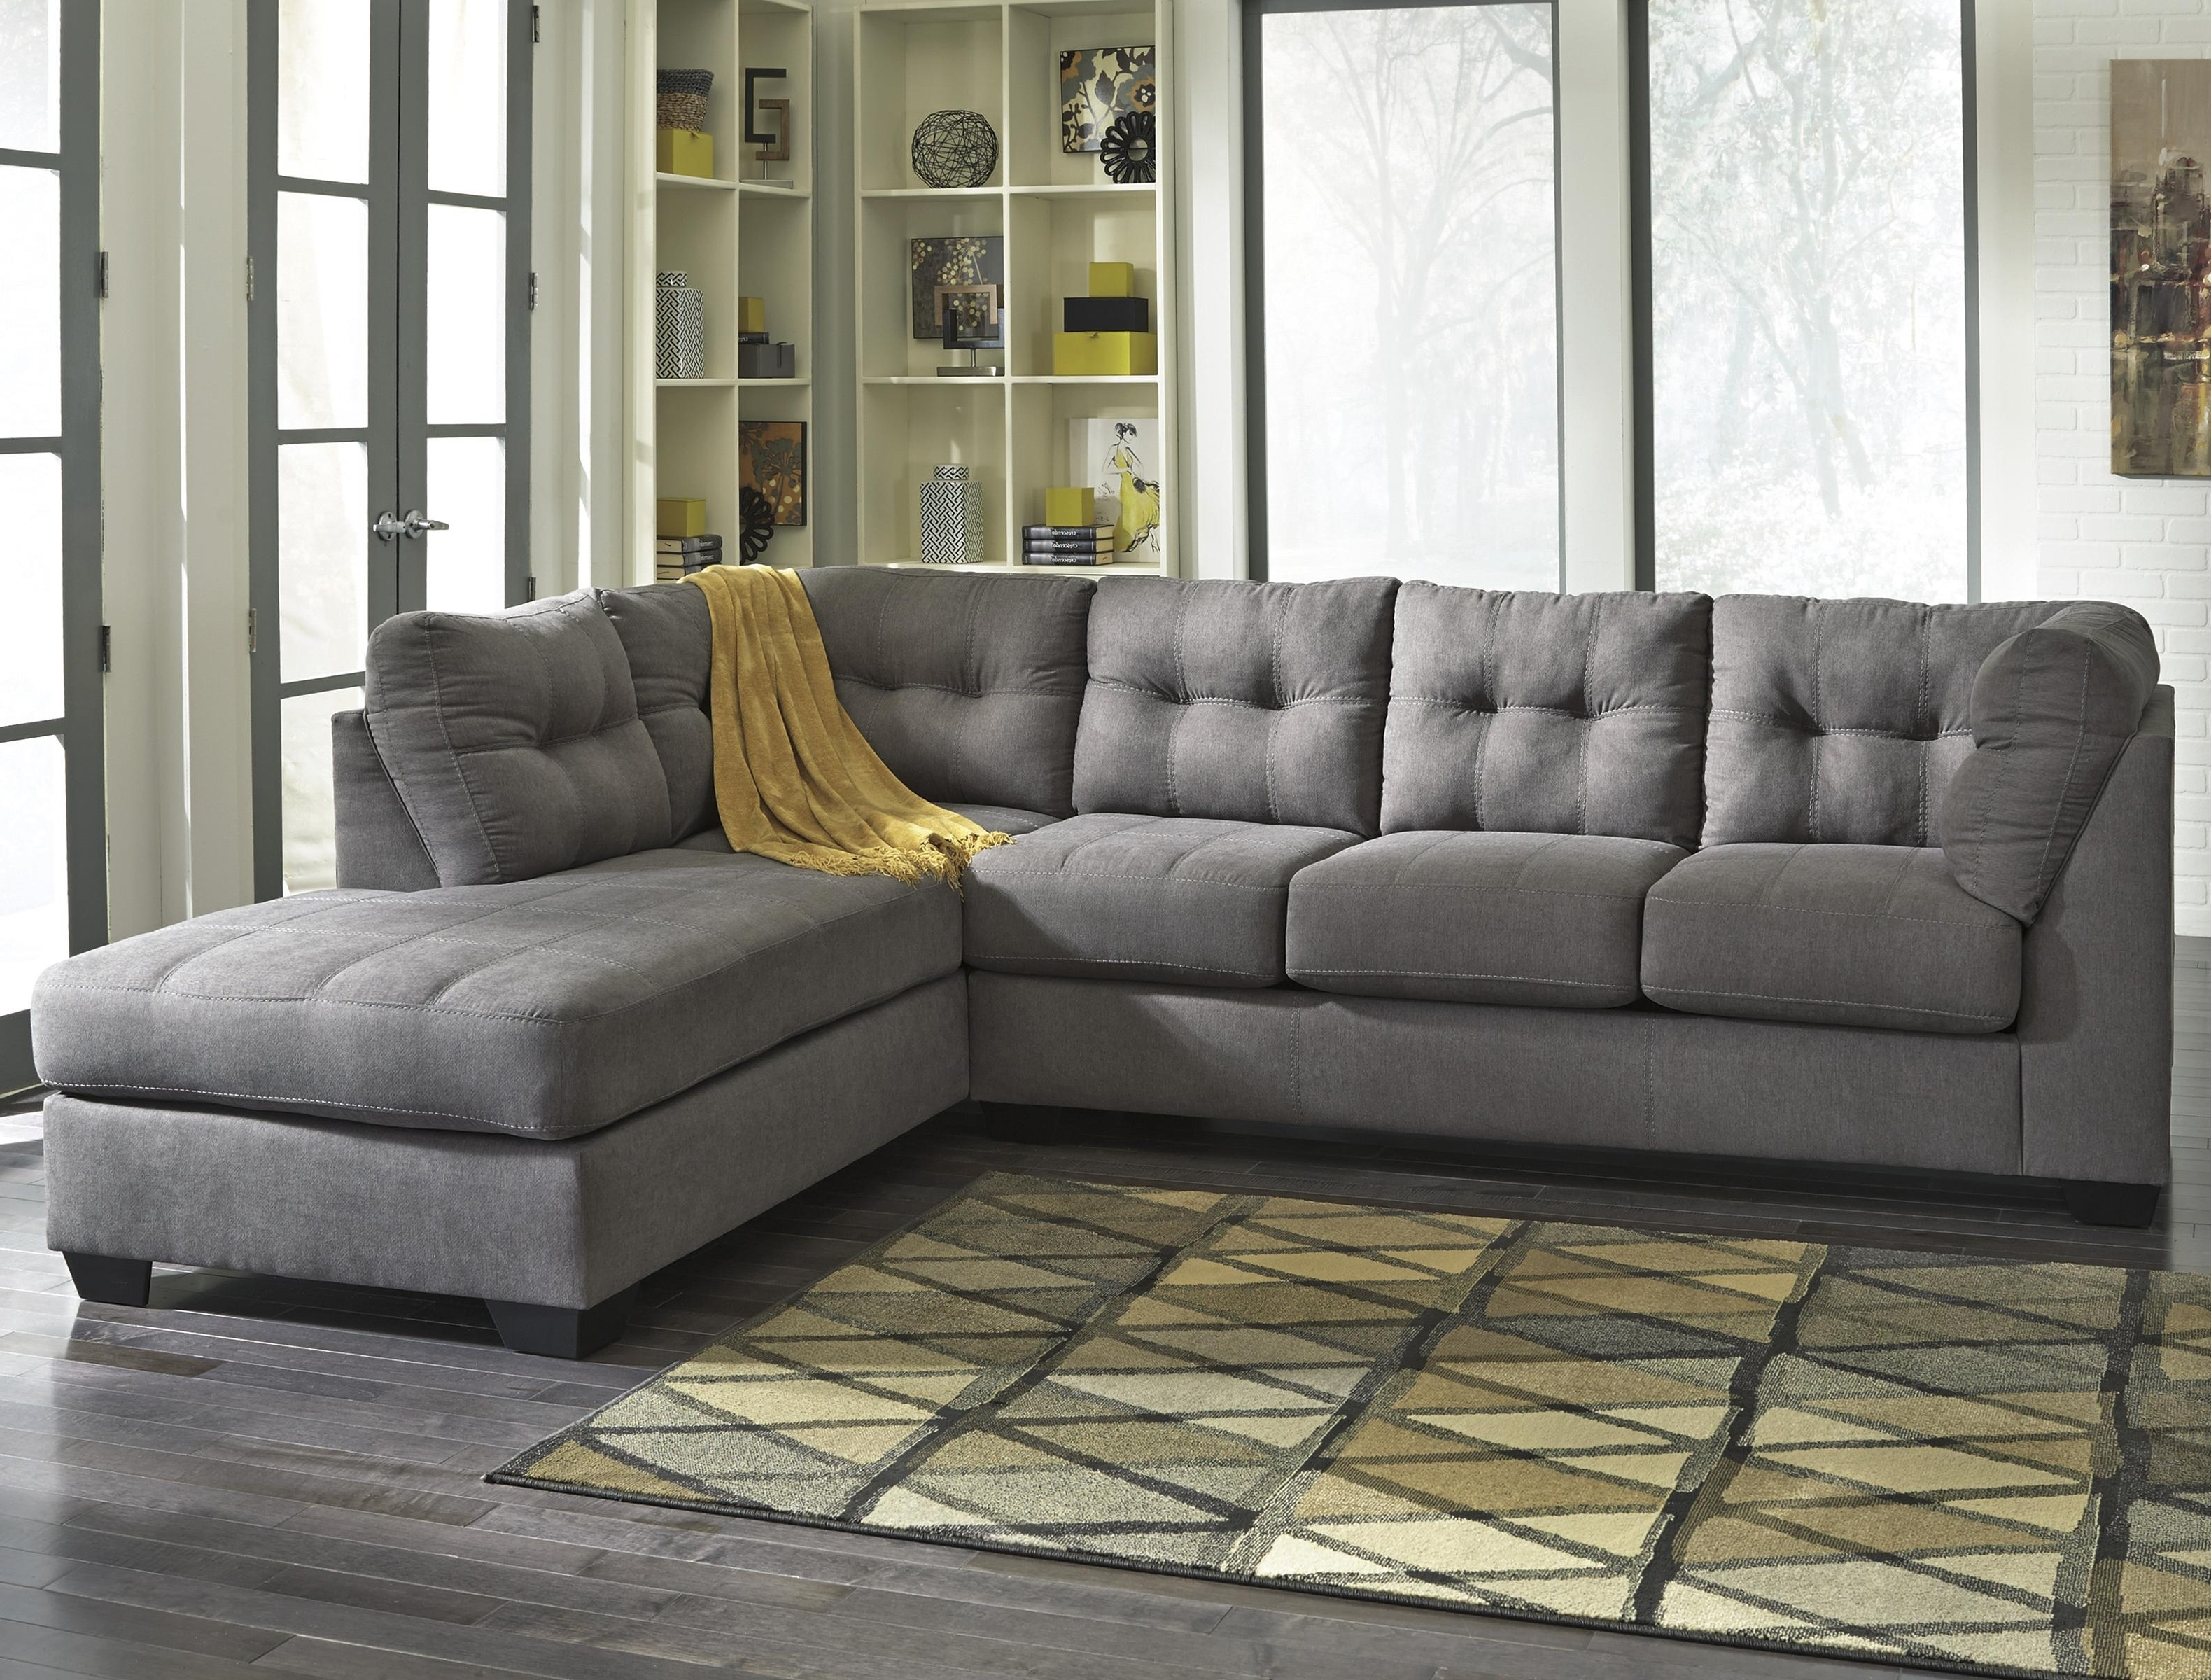 Maryland Sofas With Regard To Preferred Incredible Sectional Sofas Maryland – Mediasupload (View 11 of 20)